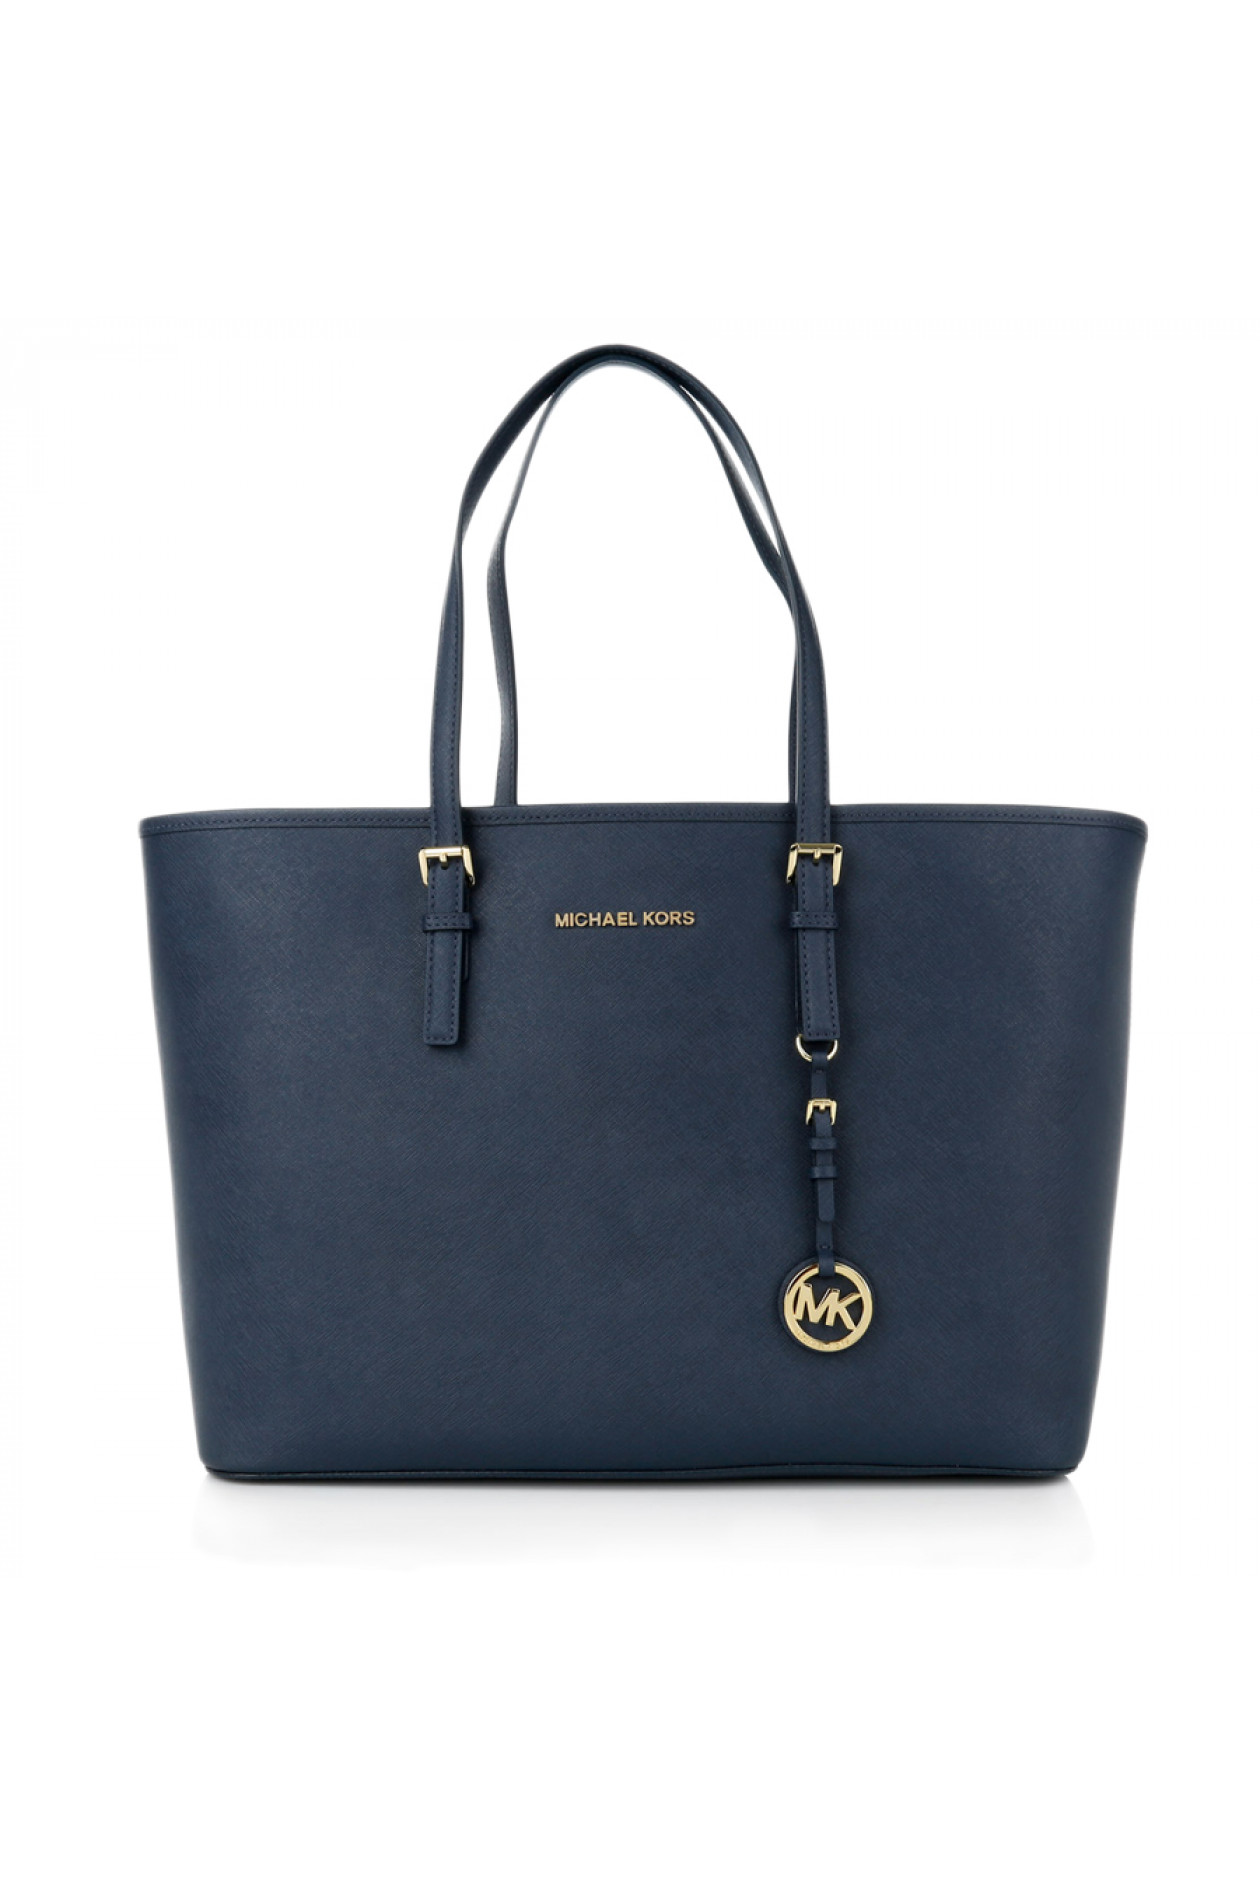 Tasche JET SET TRAVEL in Navy